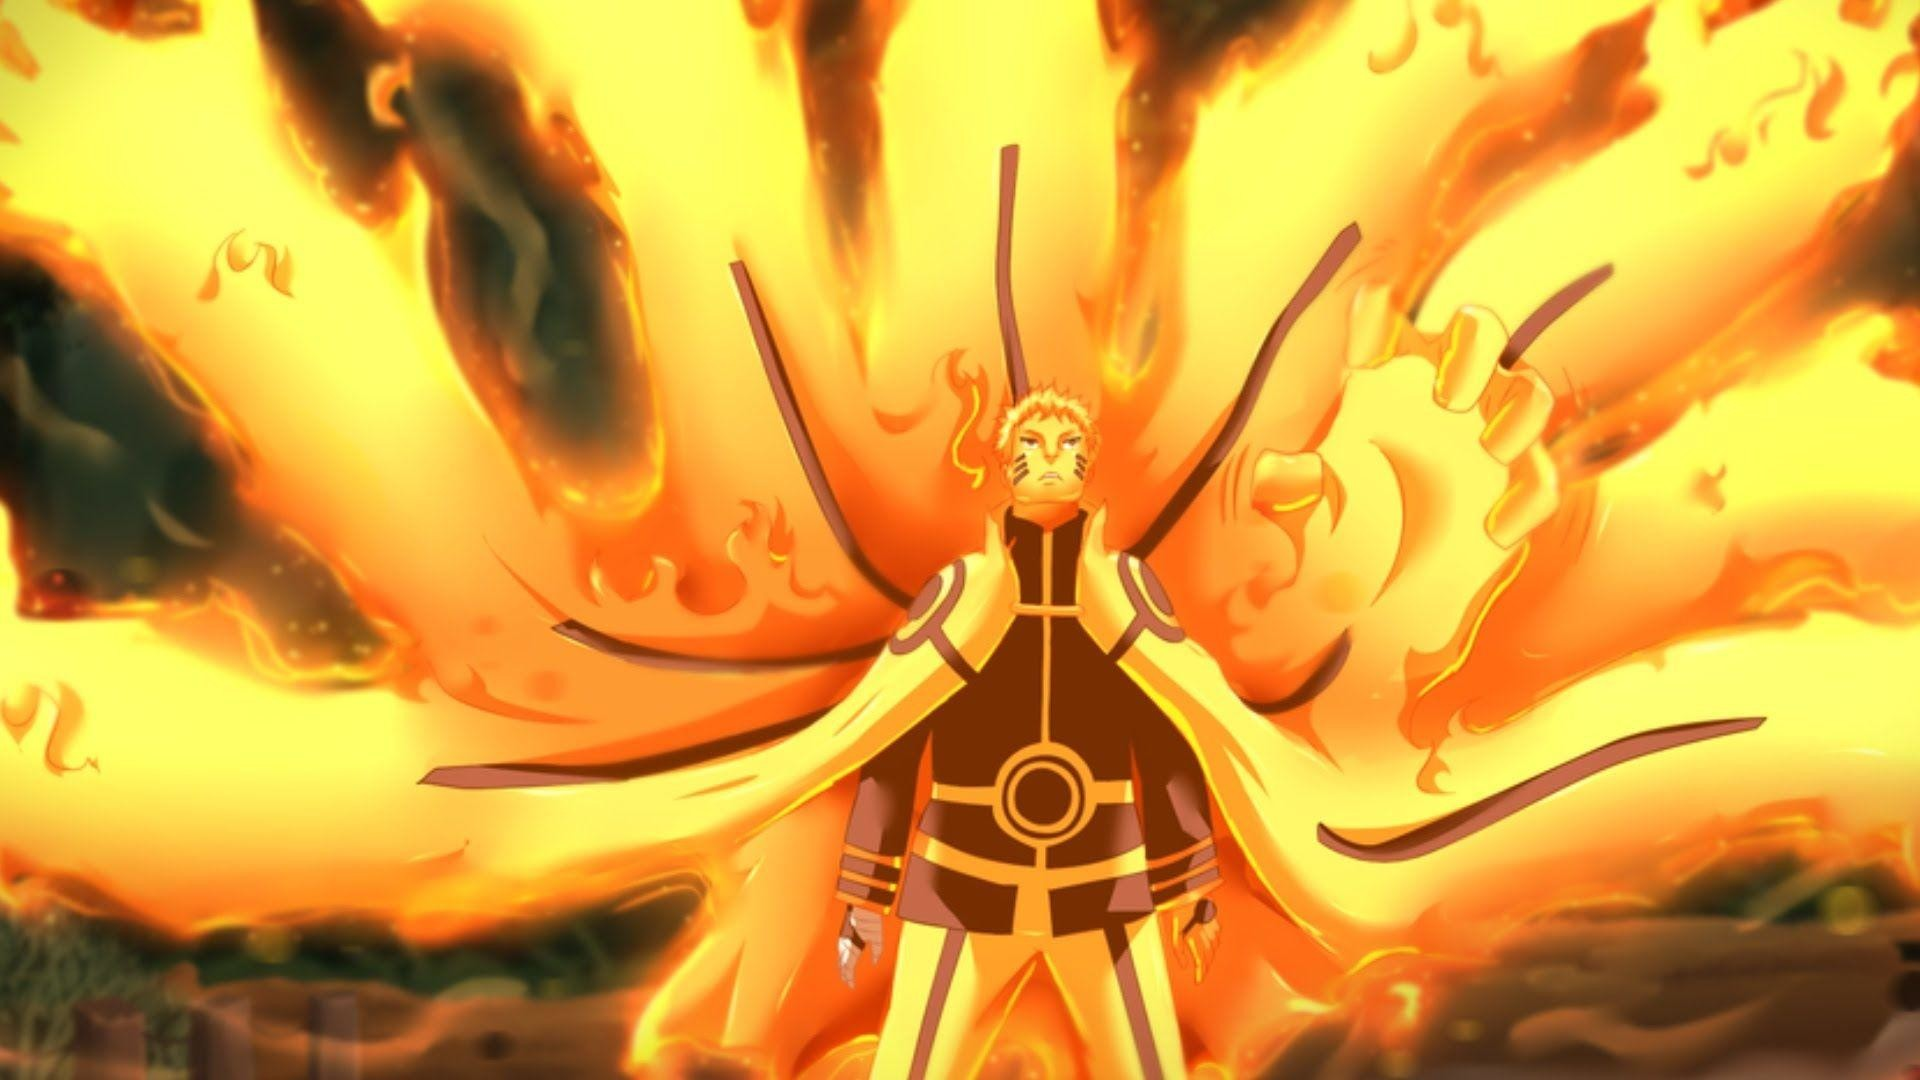 Naruto Hokage Nine Tails Mode Hd Wallpapers and backgrounds